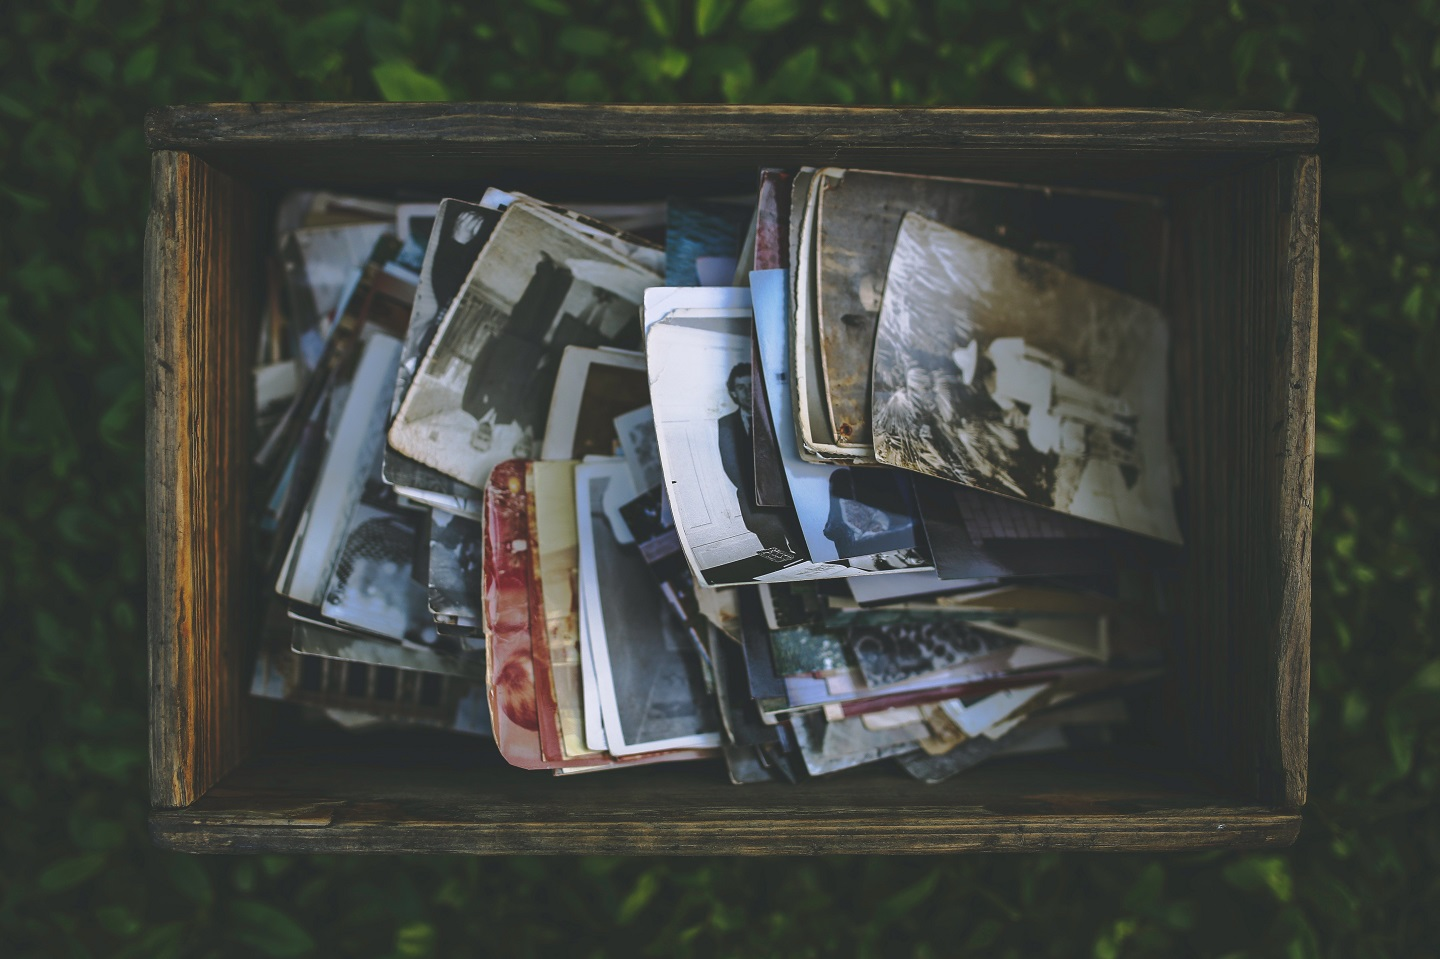 A box full of pictures